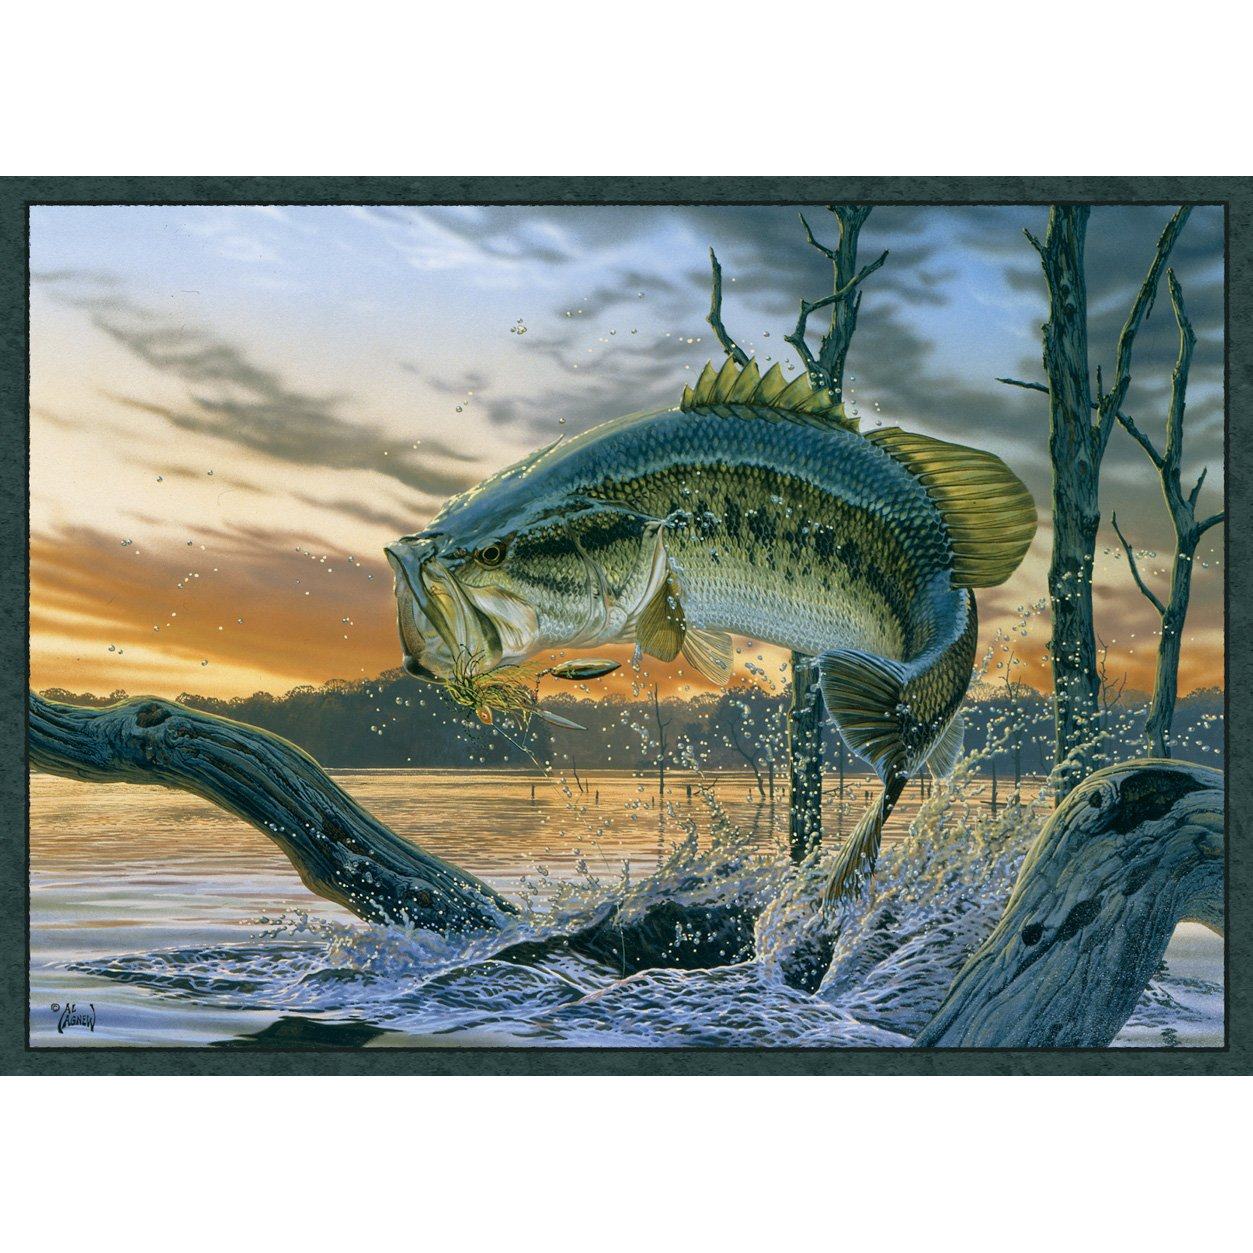 Bass Wildlife Rug from Amazon!